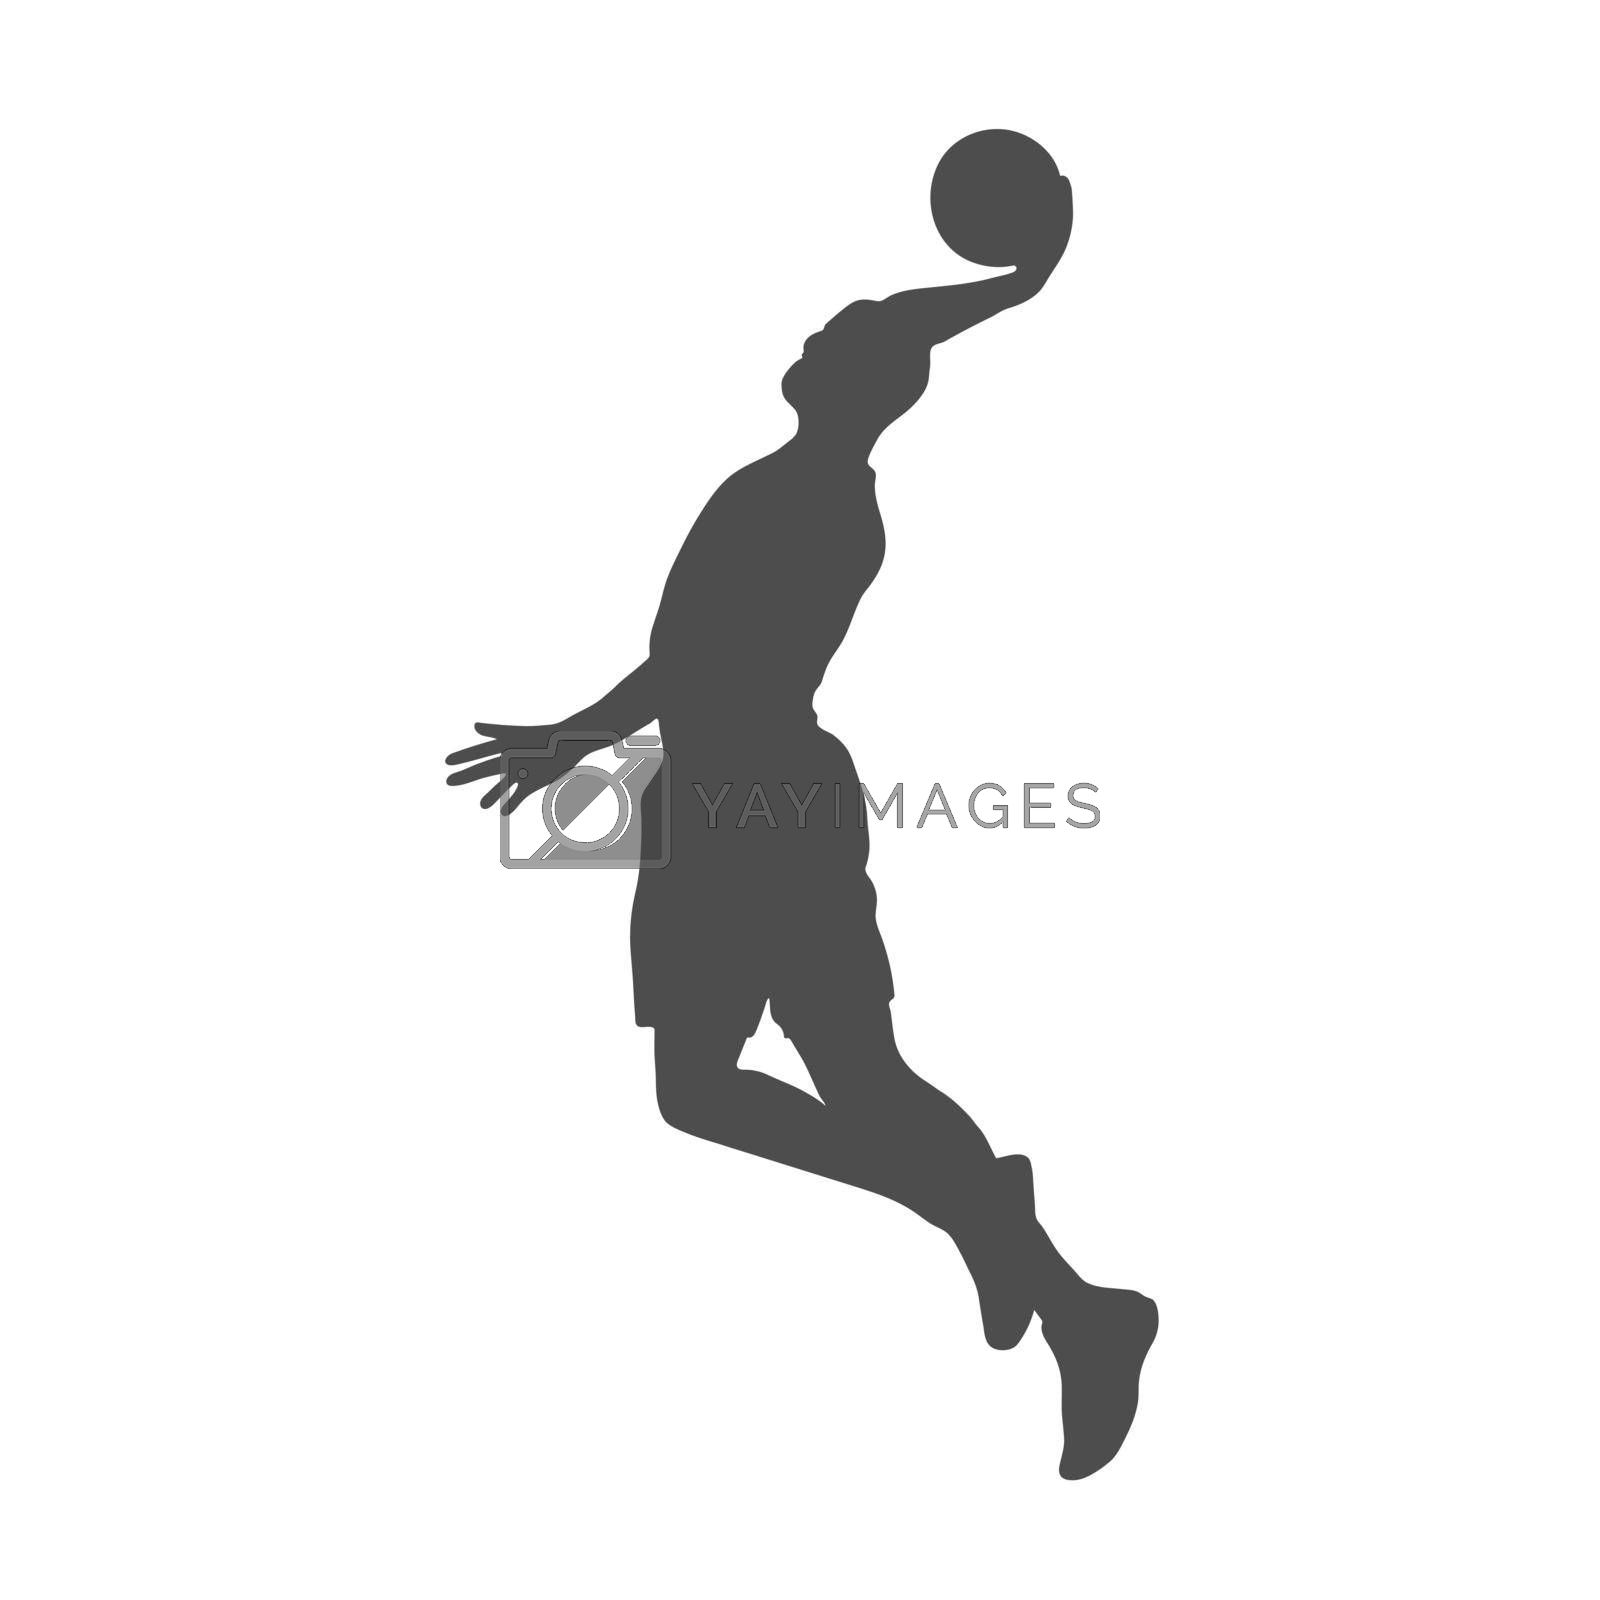 Basketball. Filled silhouette of a basketball player with a ball. Flat Style